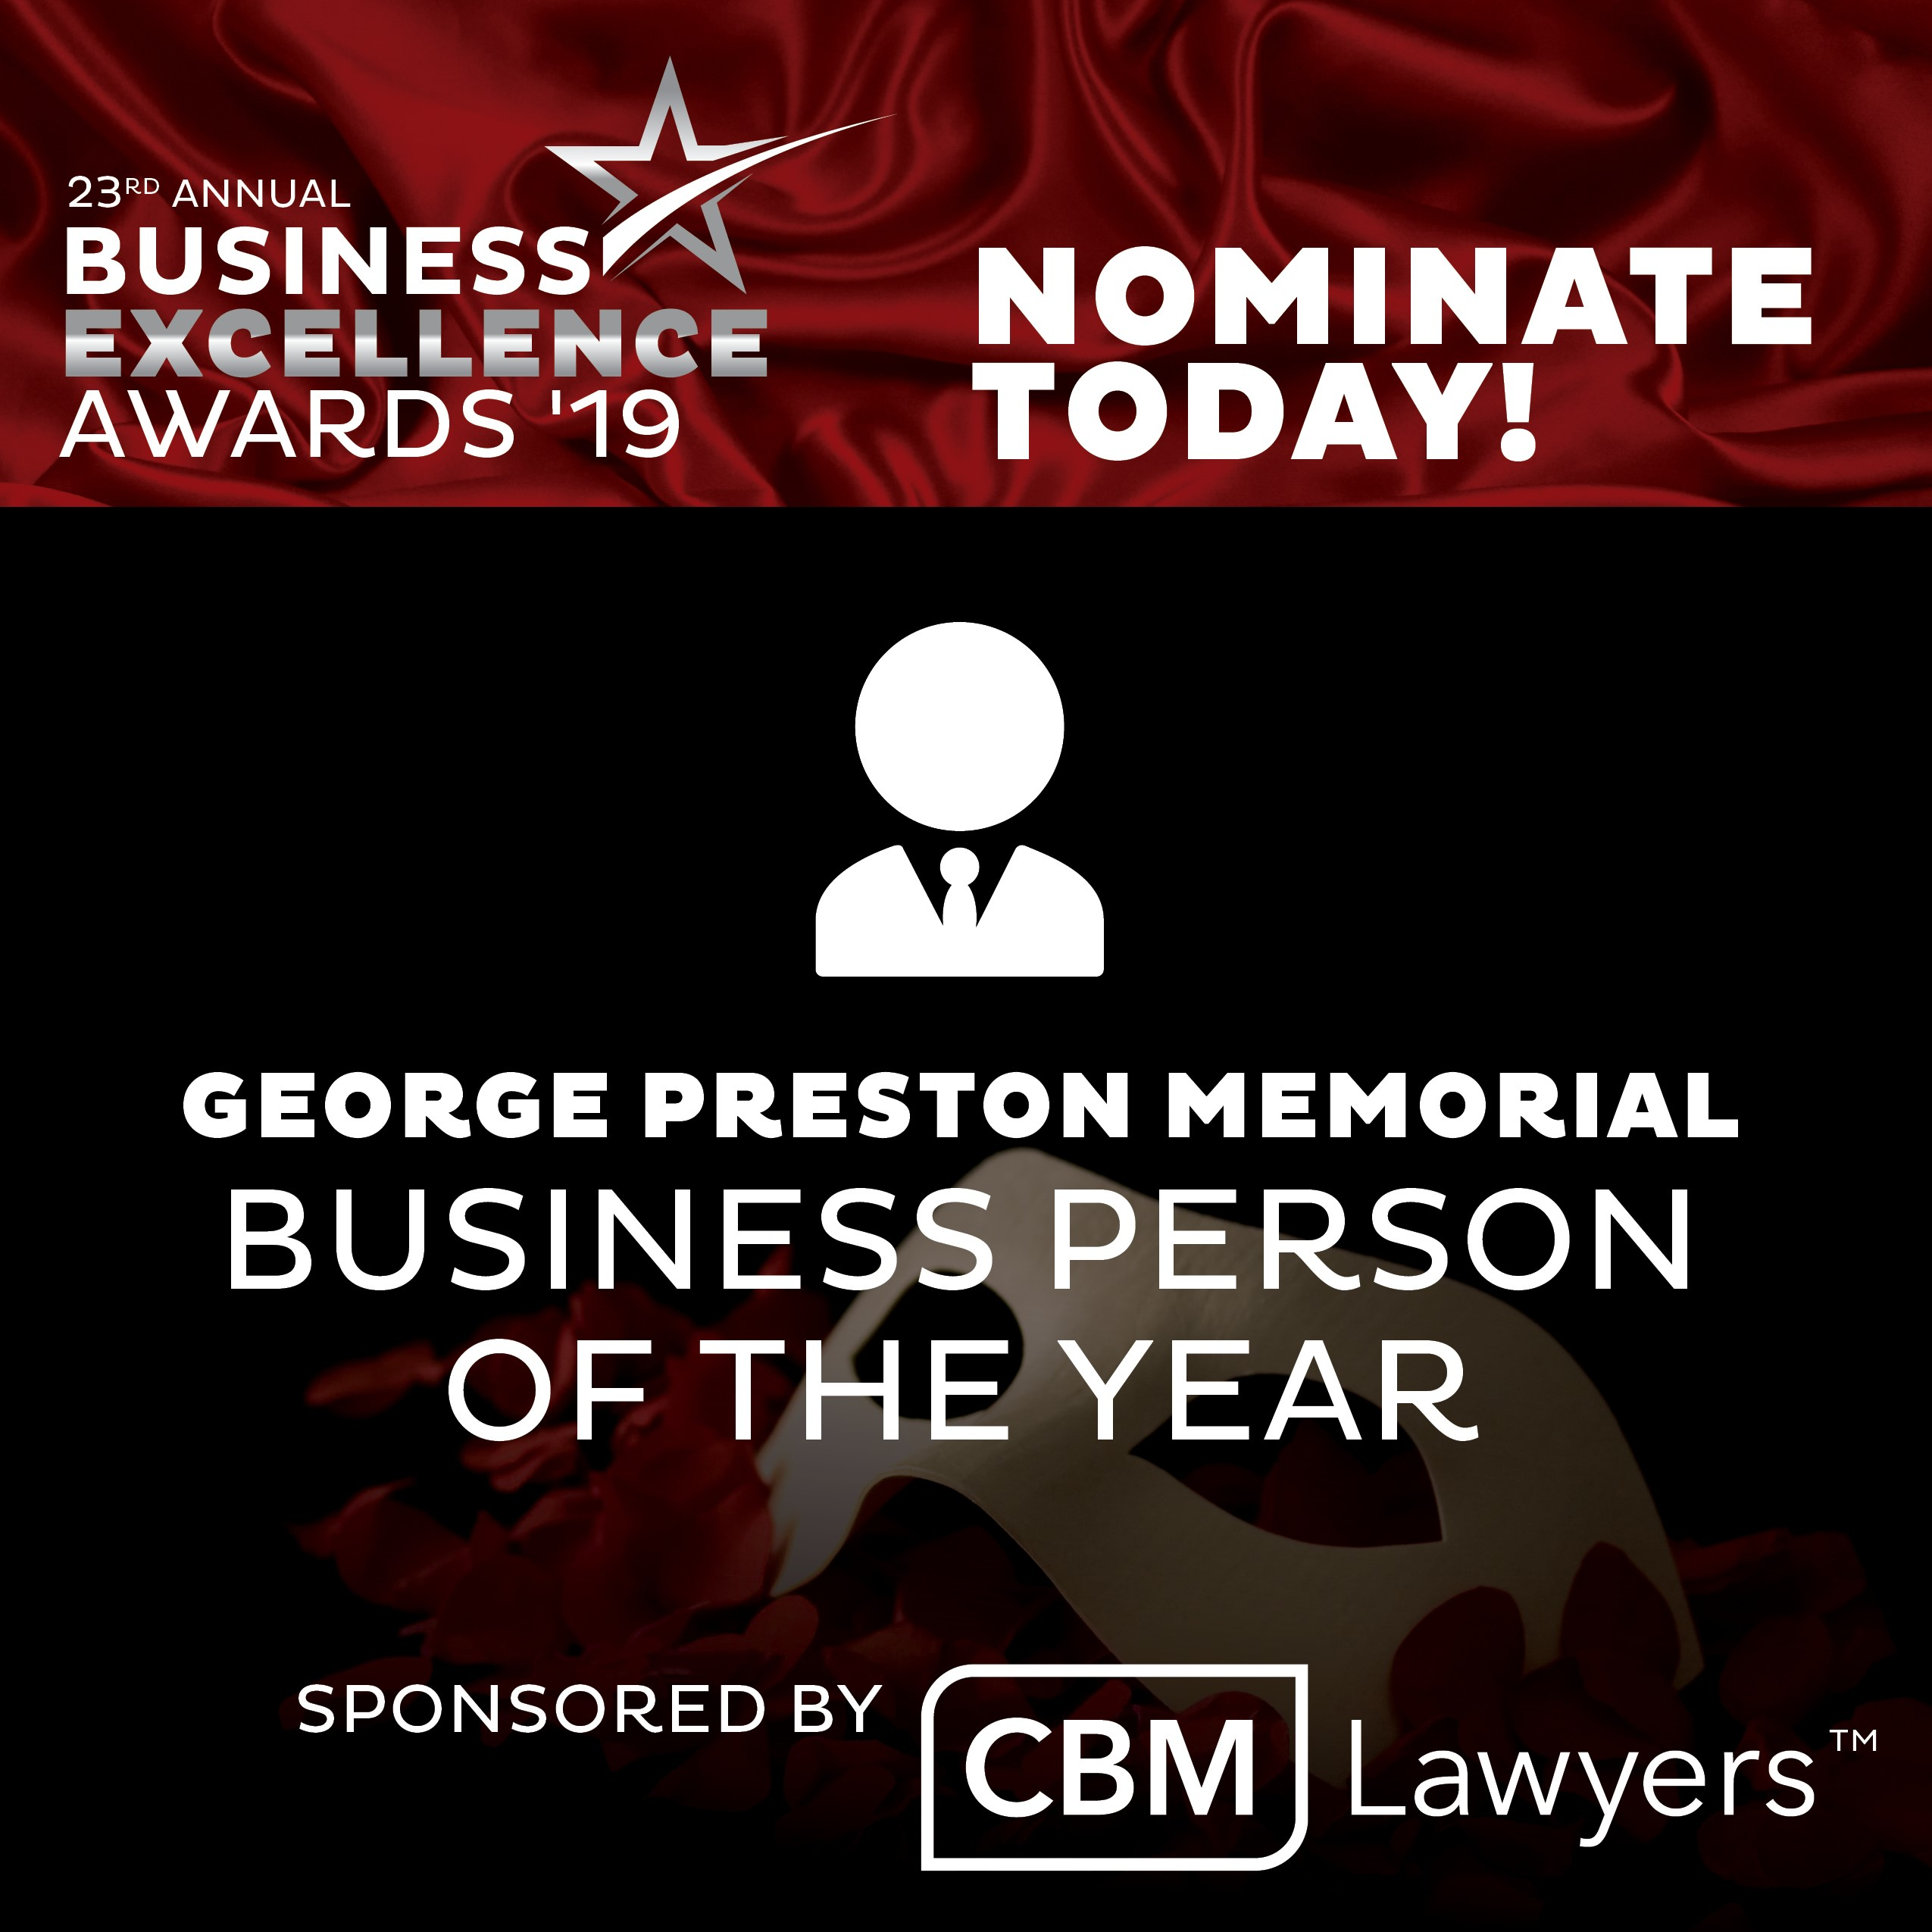 2018-Business-Person-of-the-Year---CBM-Lawyers-copy.jpg